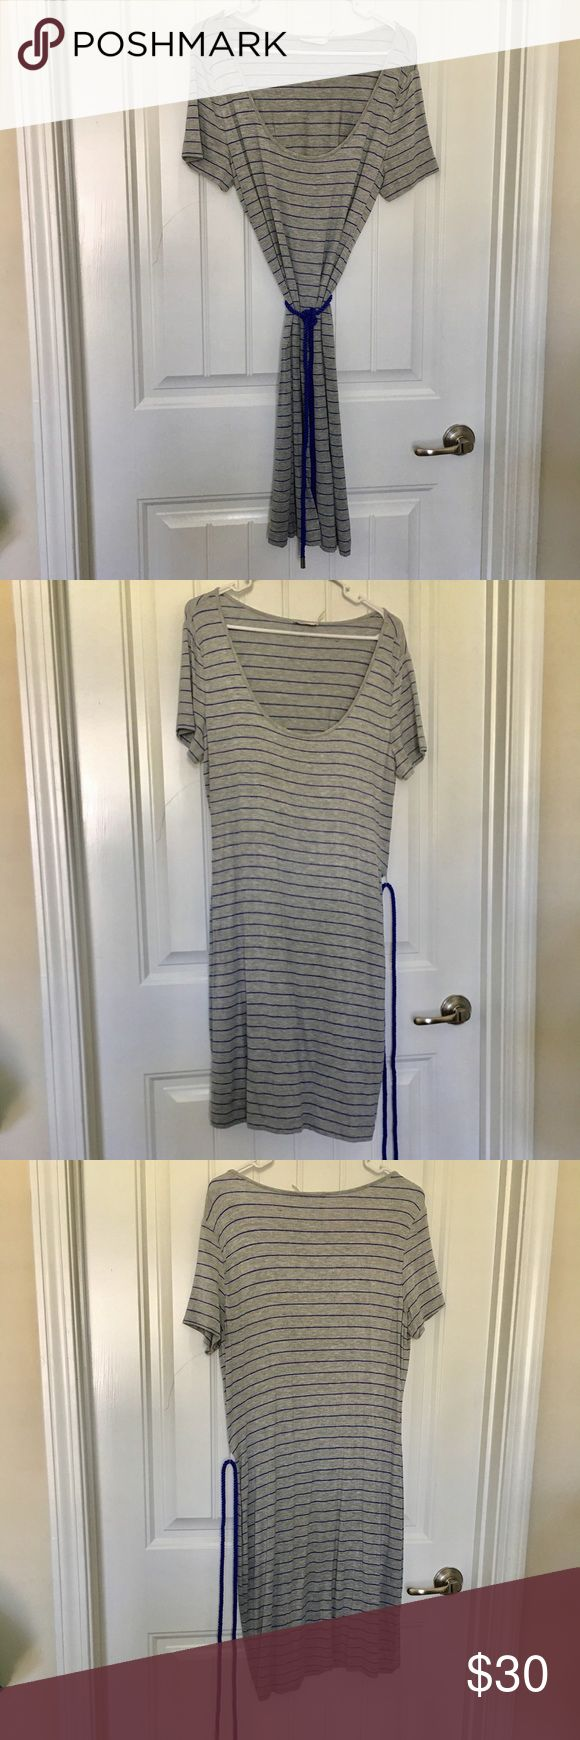 CK Striped Short Maxi Dress Excellent condition. Washed never worn. No tags. Grey w/blue stripes and roped belt. Knee Length. Light weight. Measurements available upon request.  SK6 Calvin Klein Dresses Maxi